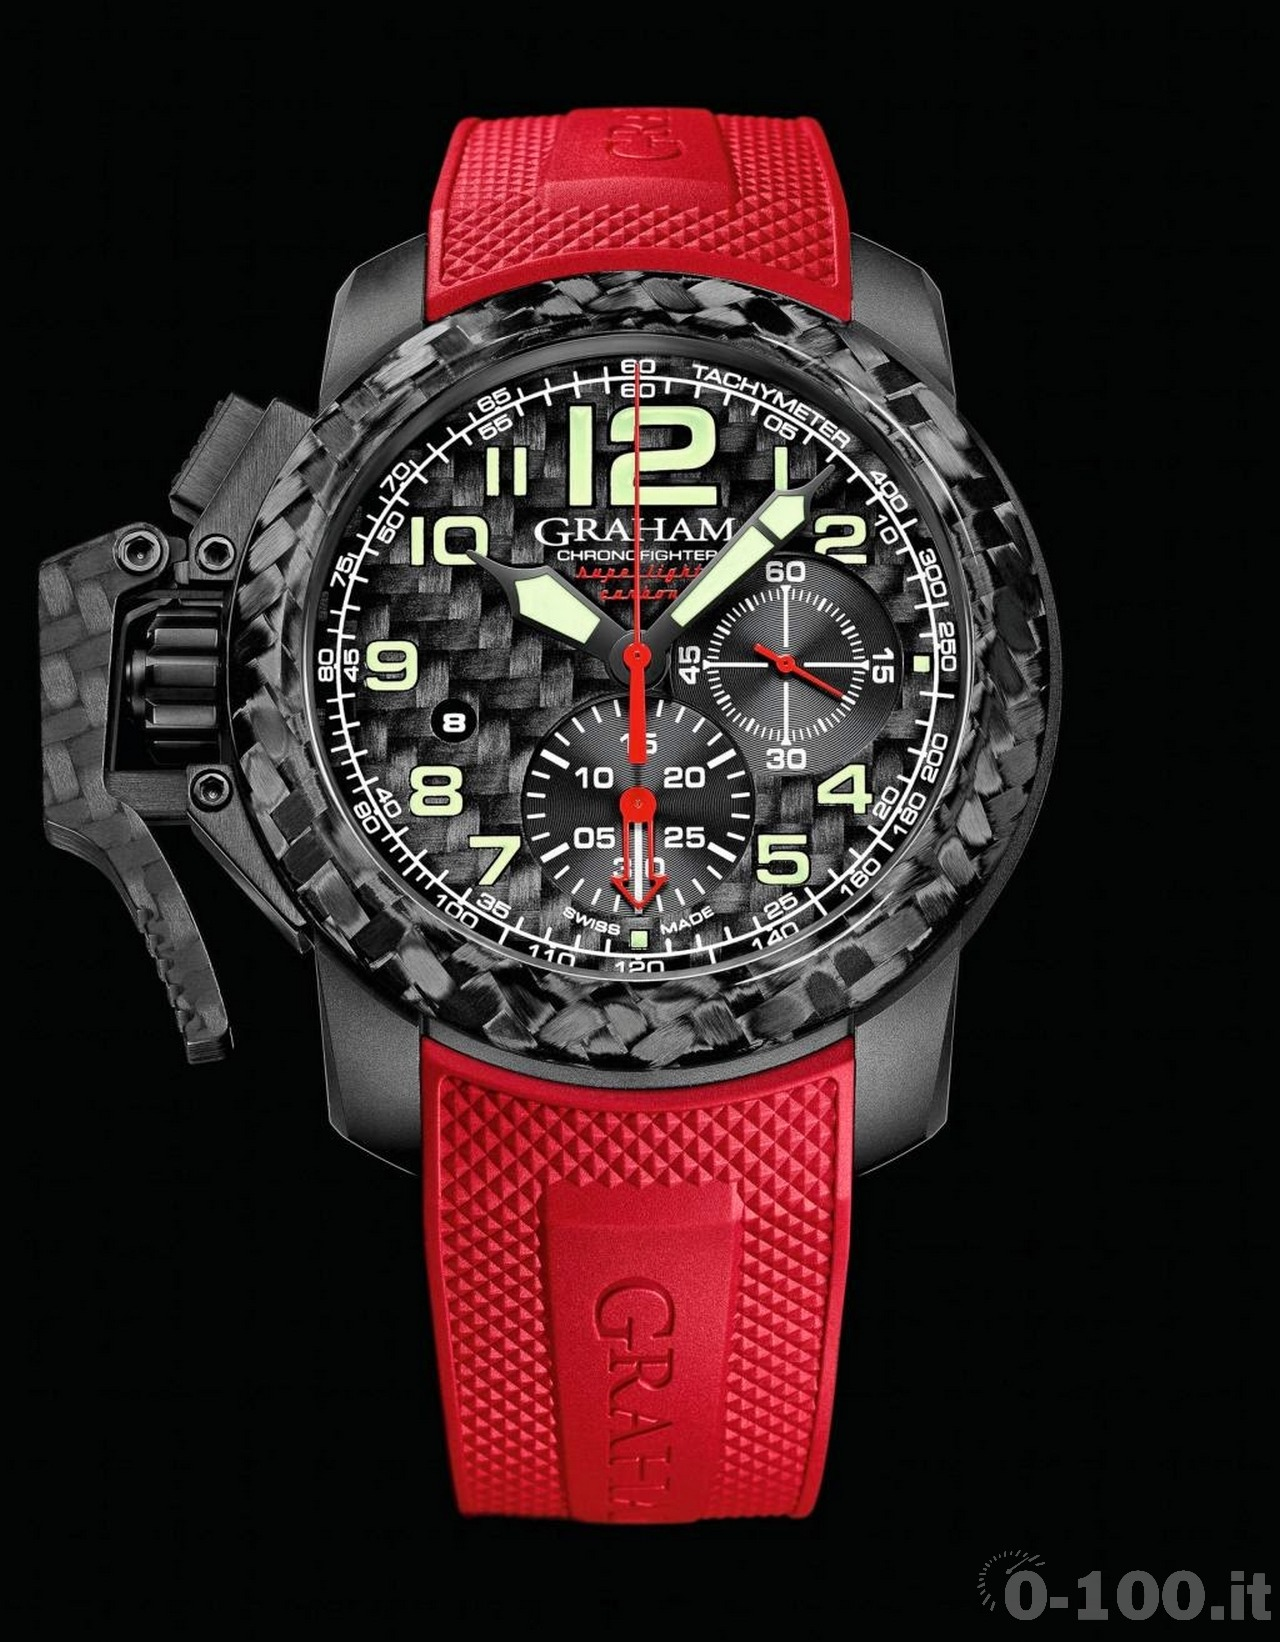 graham-chronofighter-oversize-superlight-carbon-ref-2ccbk-b11a-prezzo-price-0-100_4